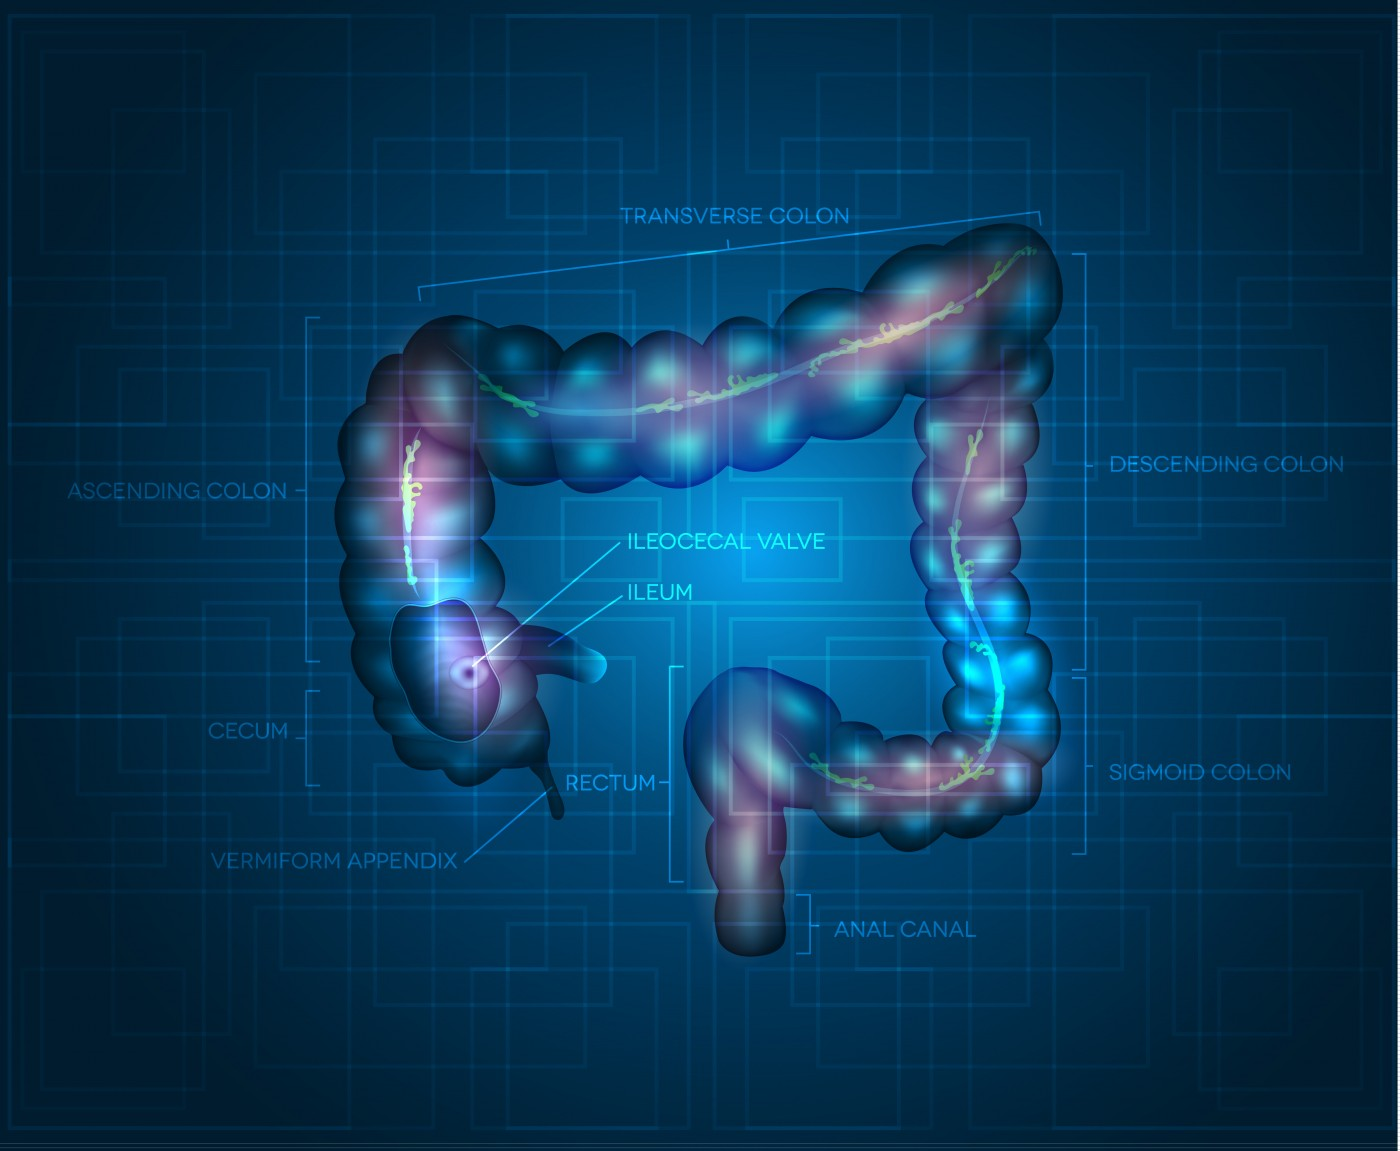 Novel Mitochondrial Biomarker Discovered for Colorectal Cancer